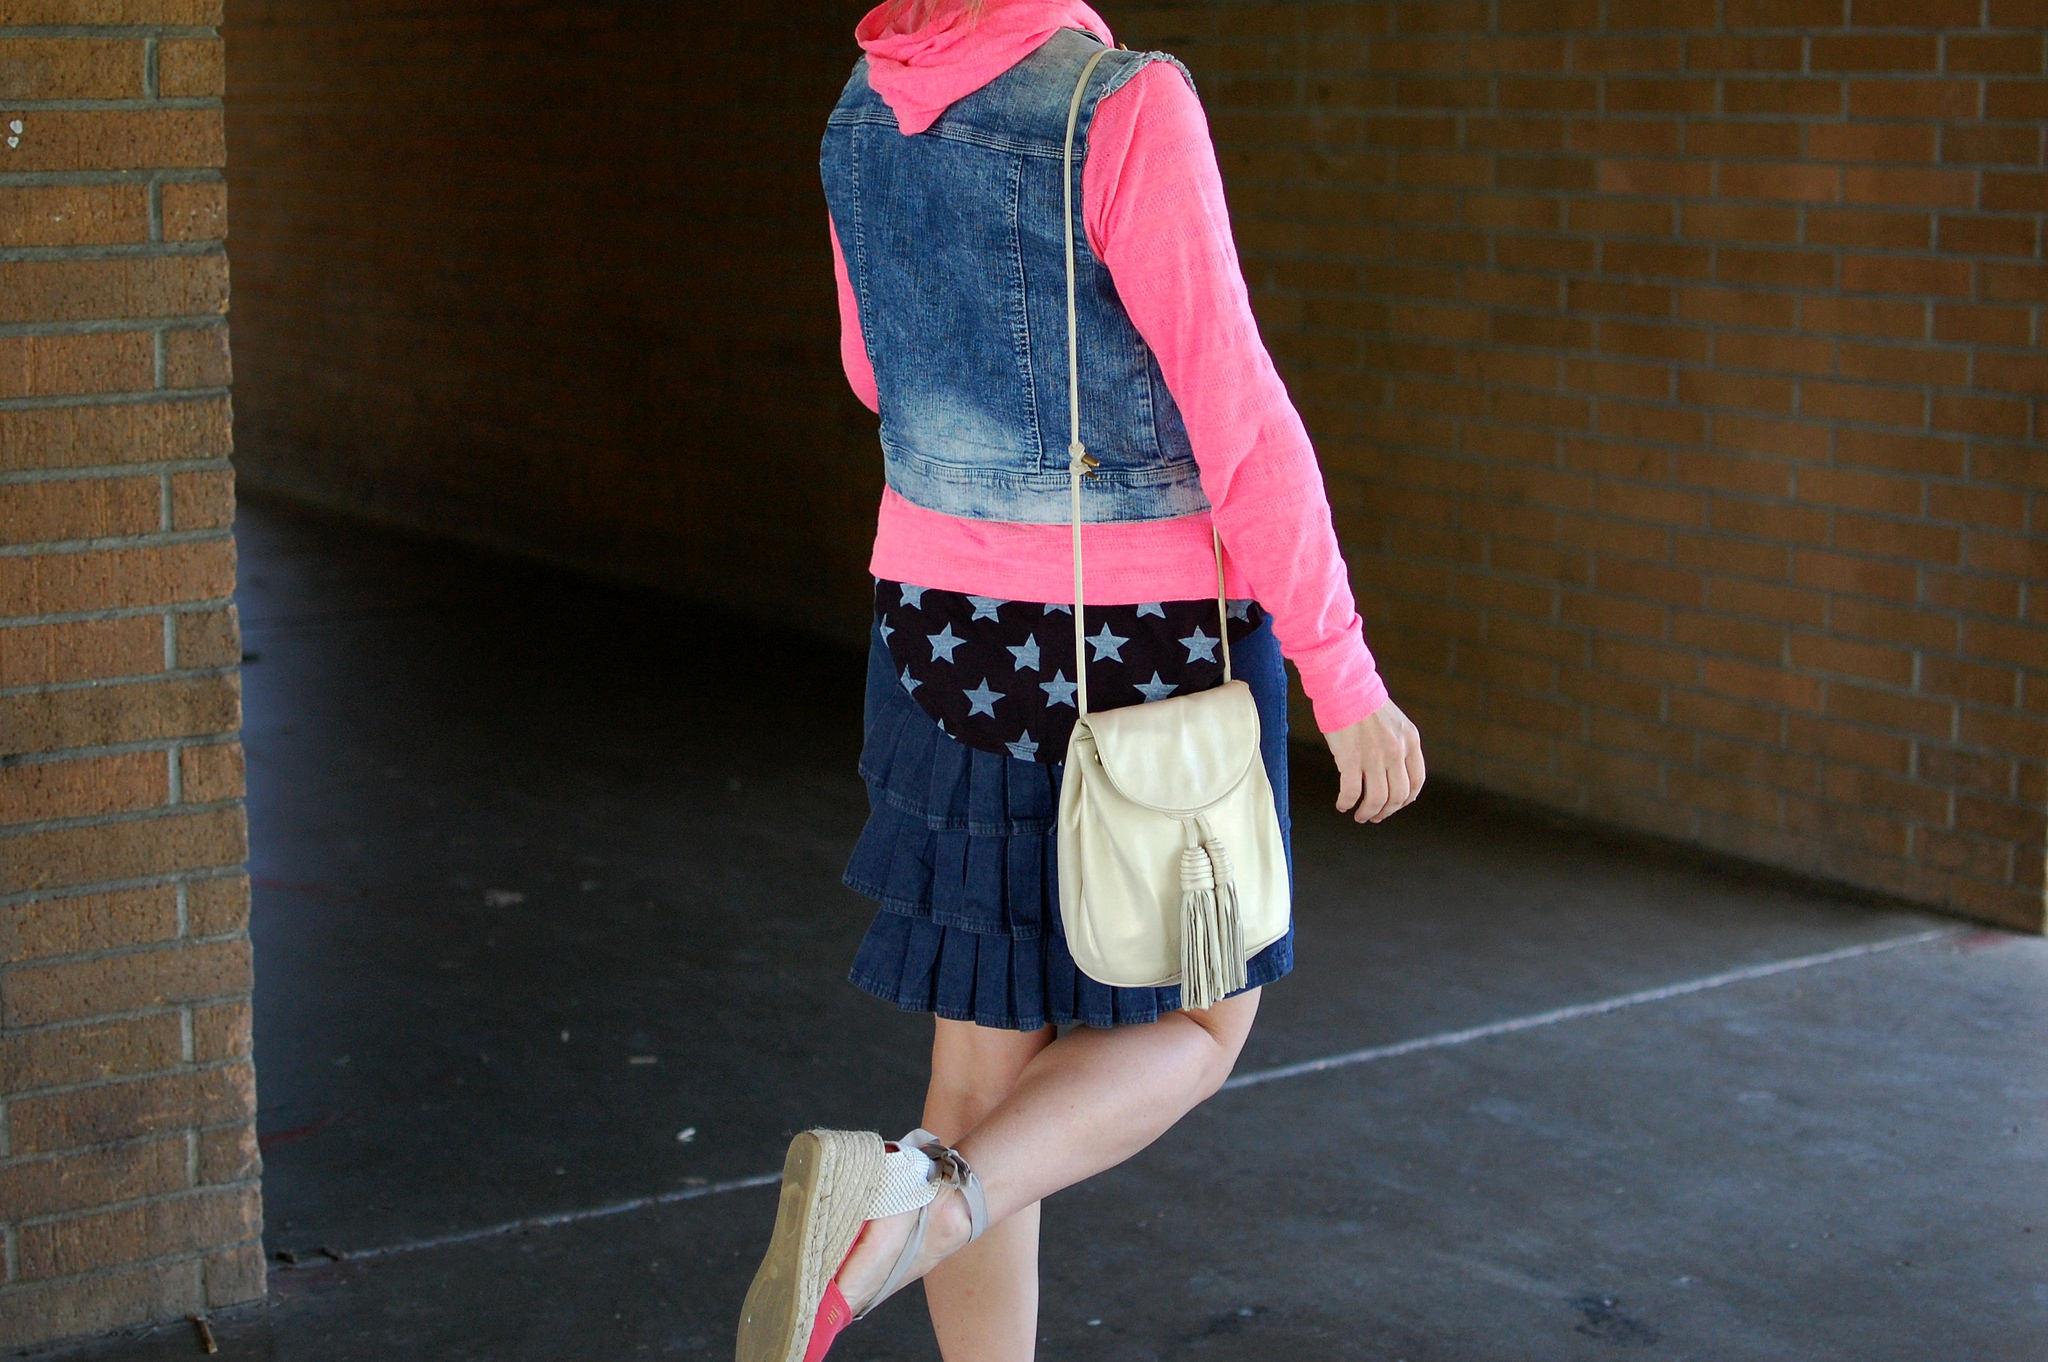 denim vest hoodie esparadille wedge outfit ootd blogger whatiwore2day